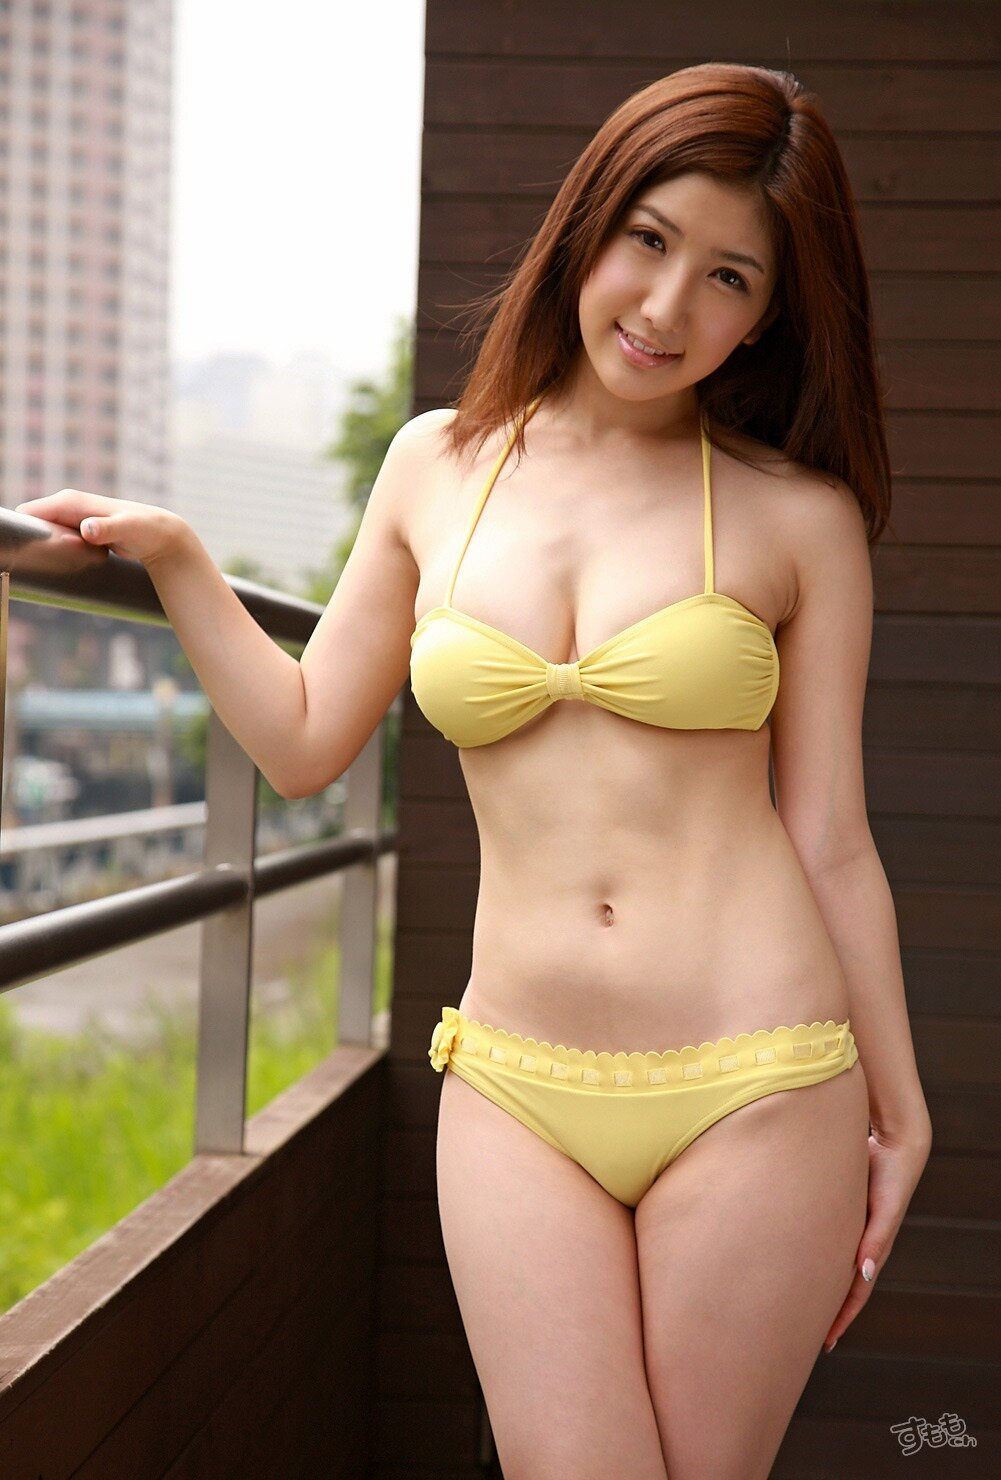 menon-full-japanese-full-figured-bikini-models-pics